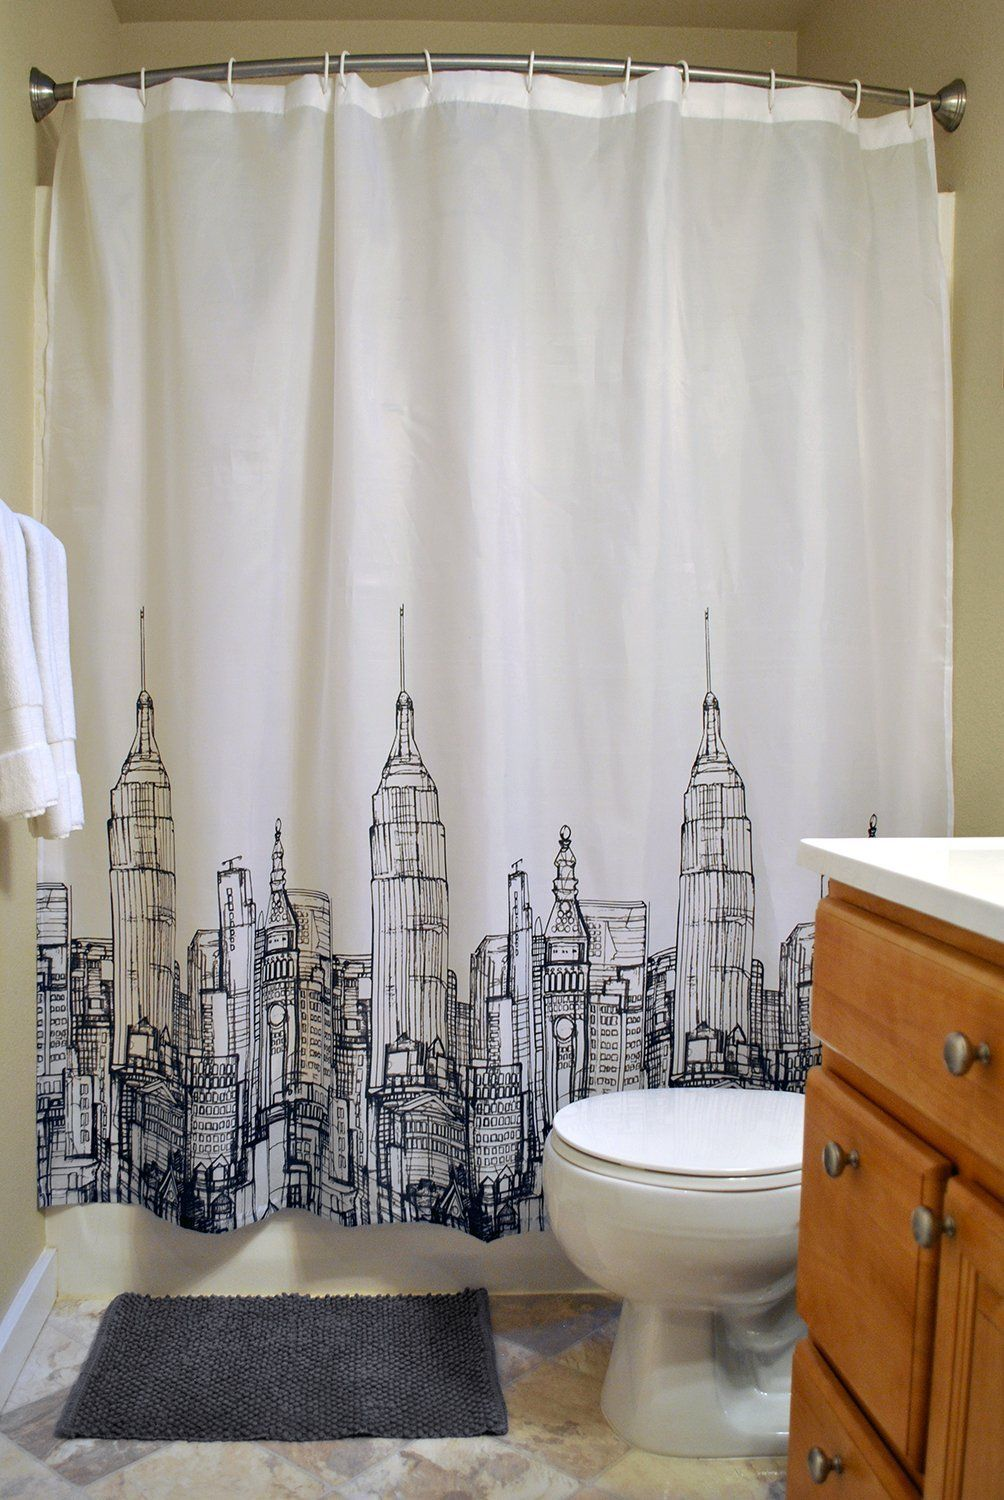 Complete Bathroom Sets With Shower Curtains: A Budget Friendly